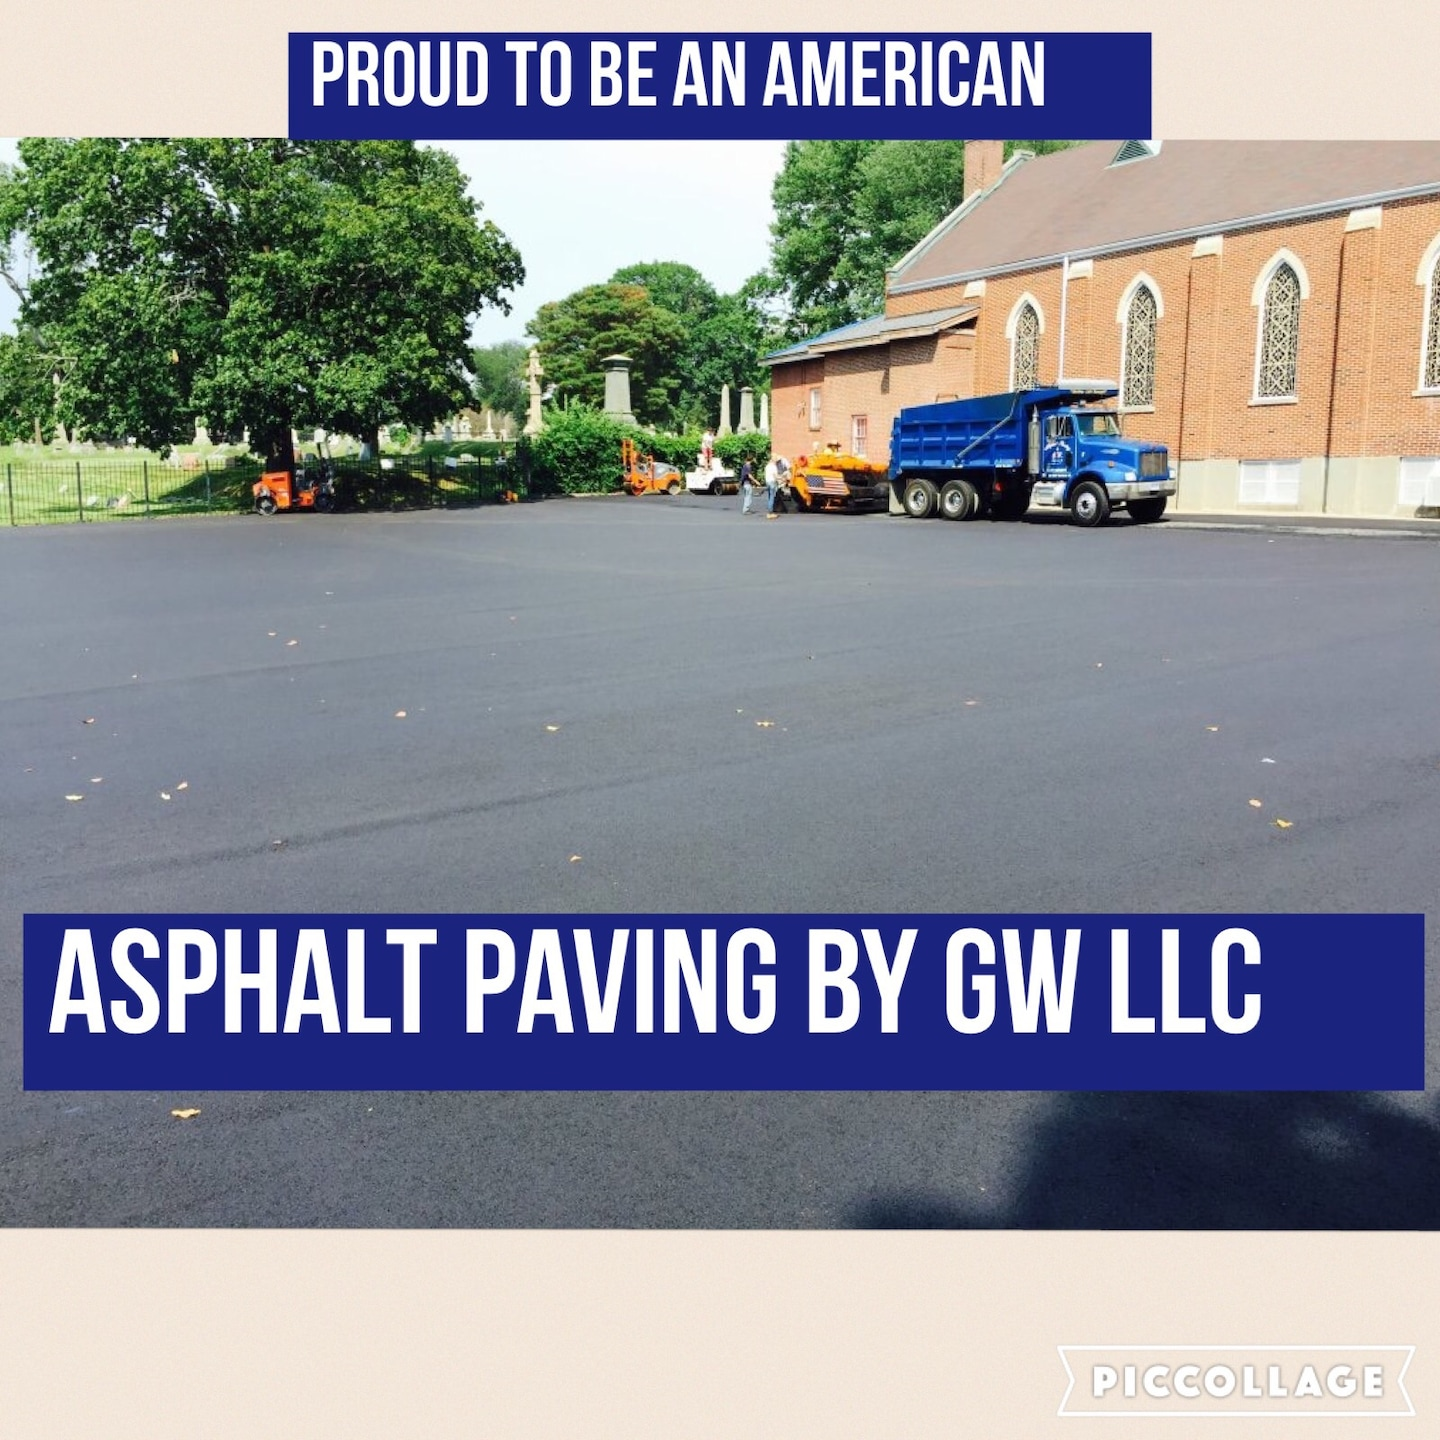 Asphalt Paving by G W LLC